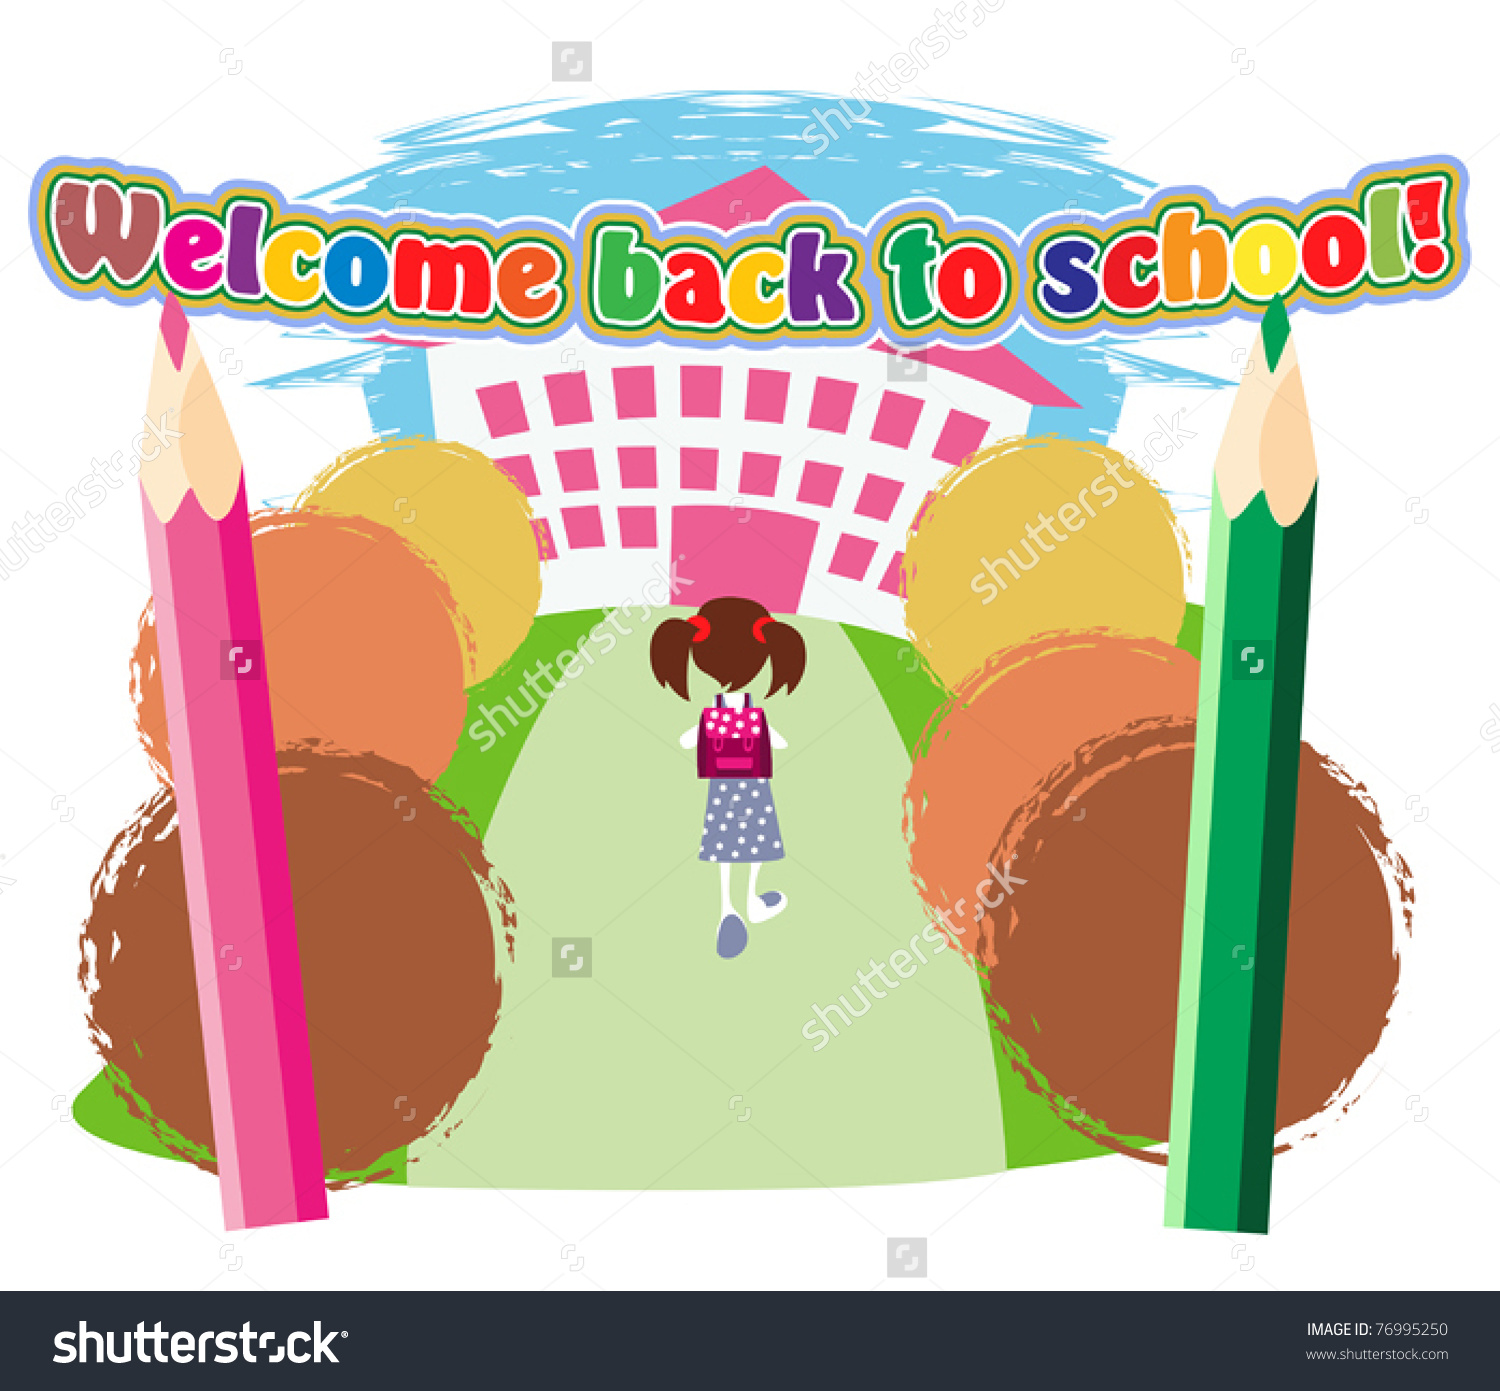 School entrance gate clipart.